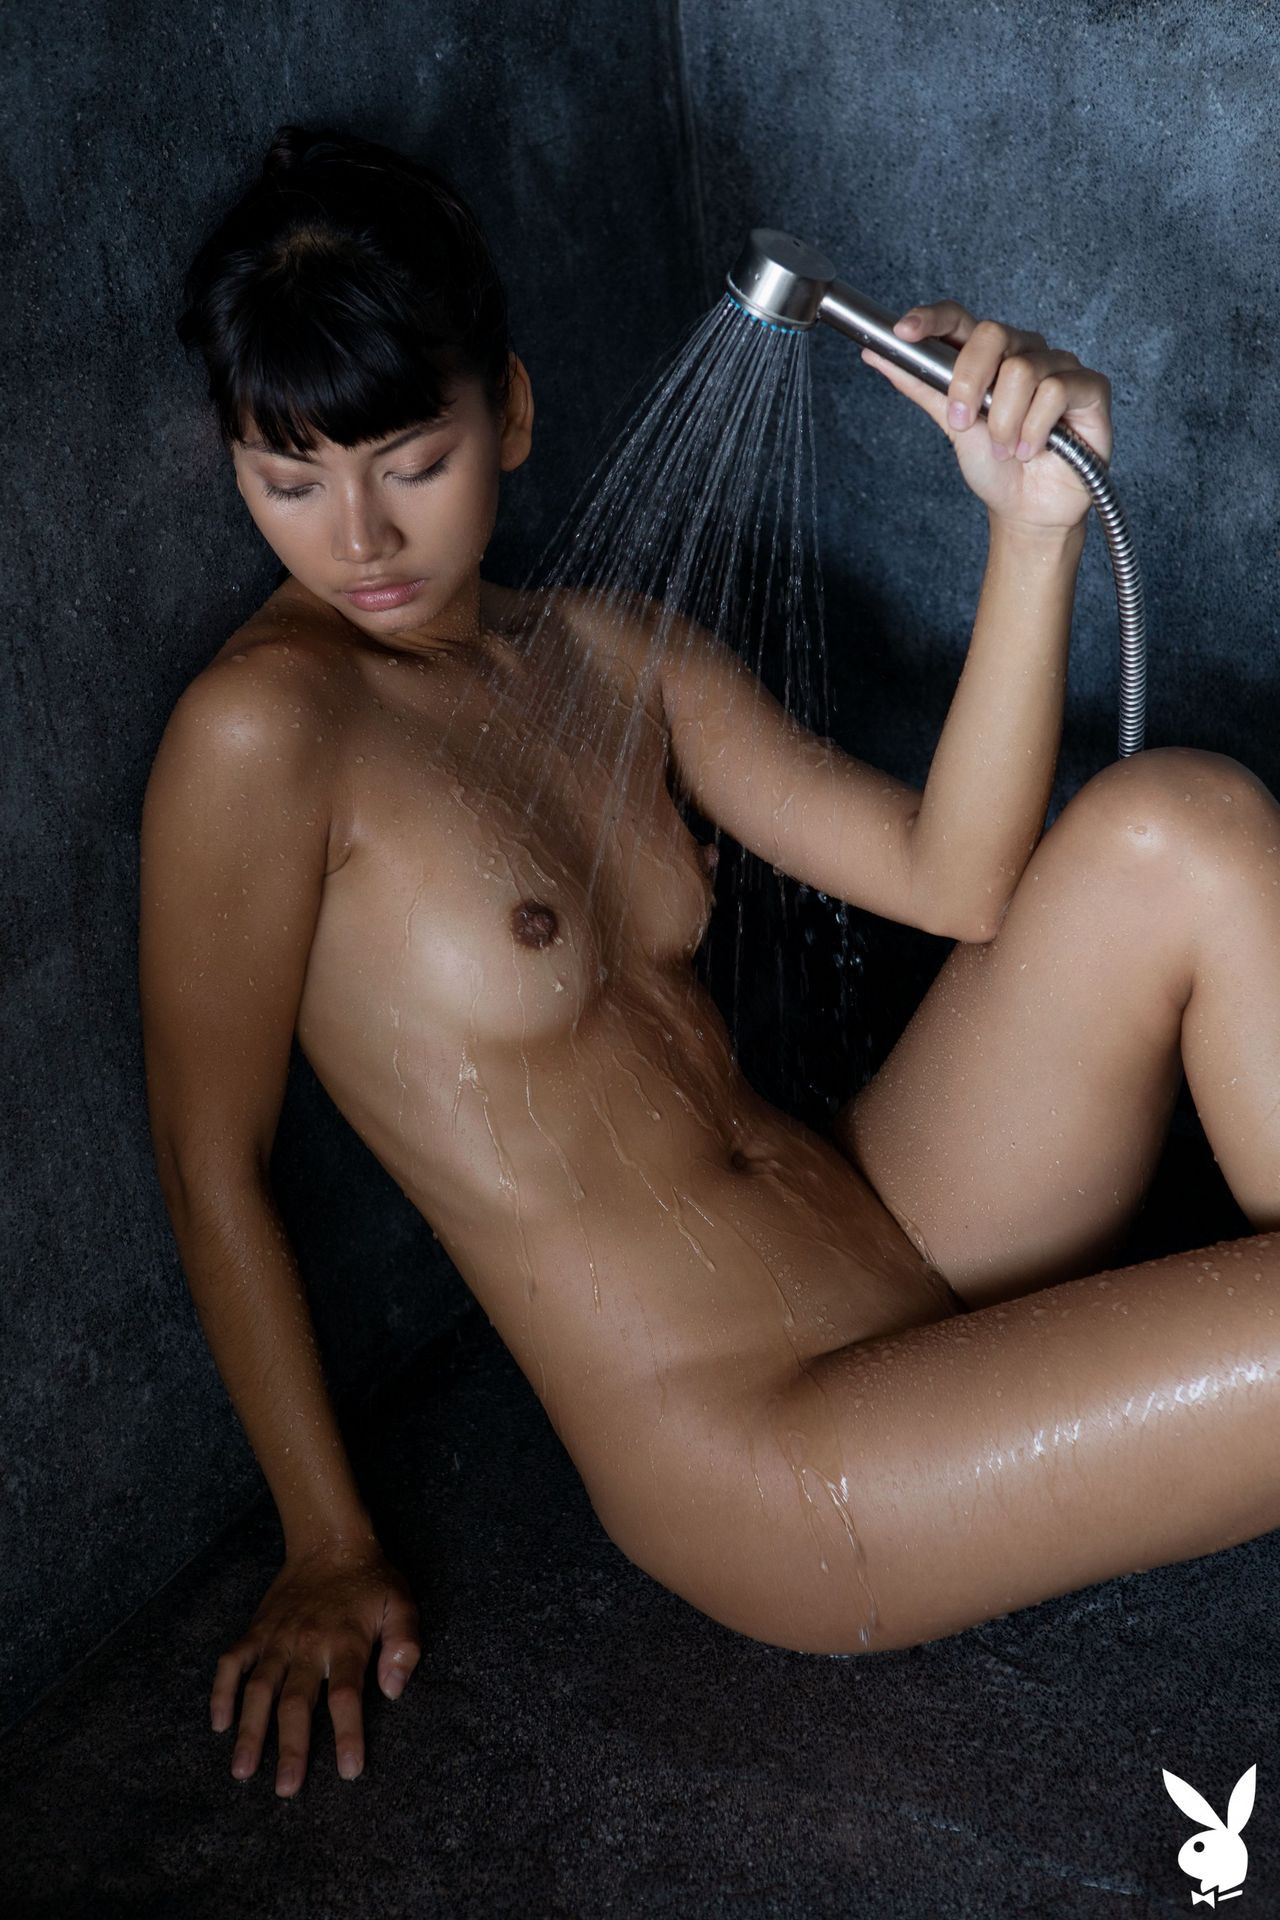 Cara Pin Nude Soft Shower thefappening.nu 16